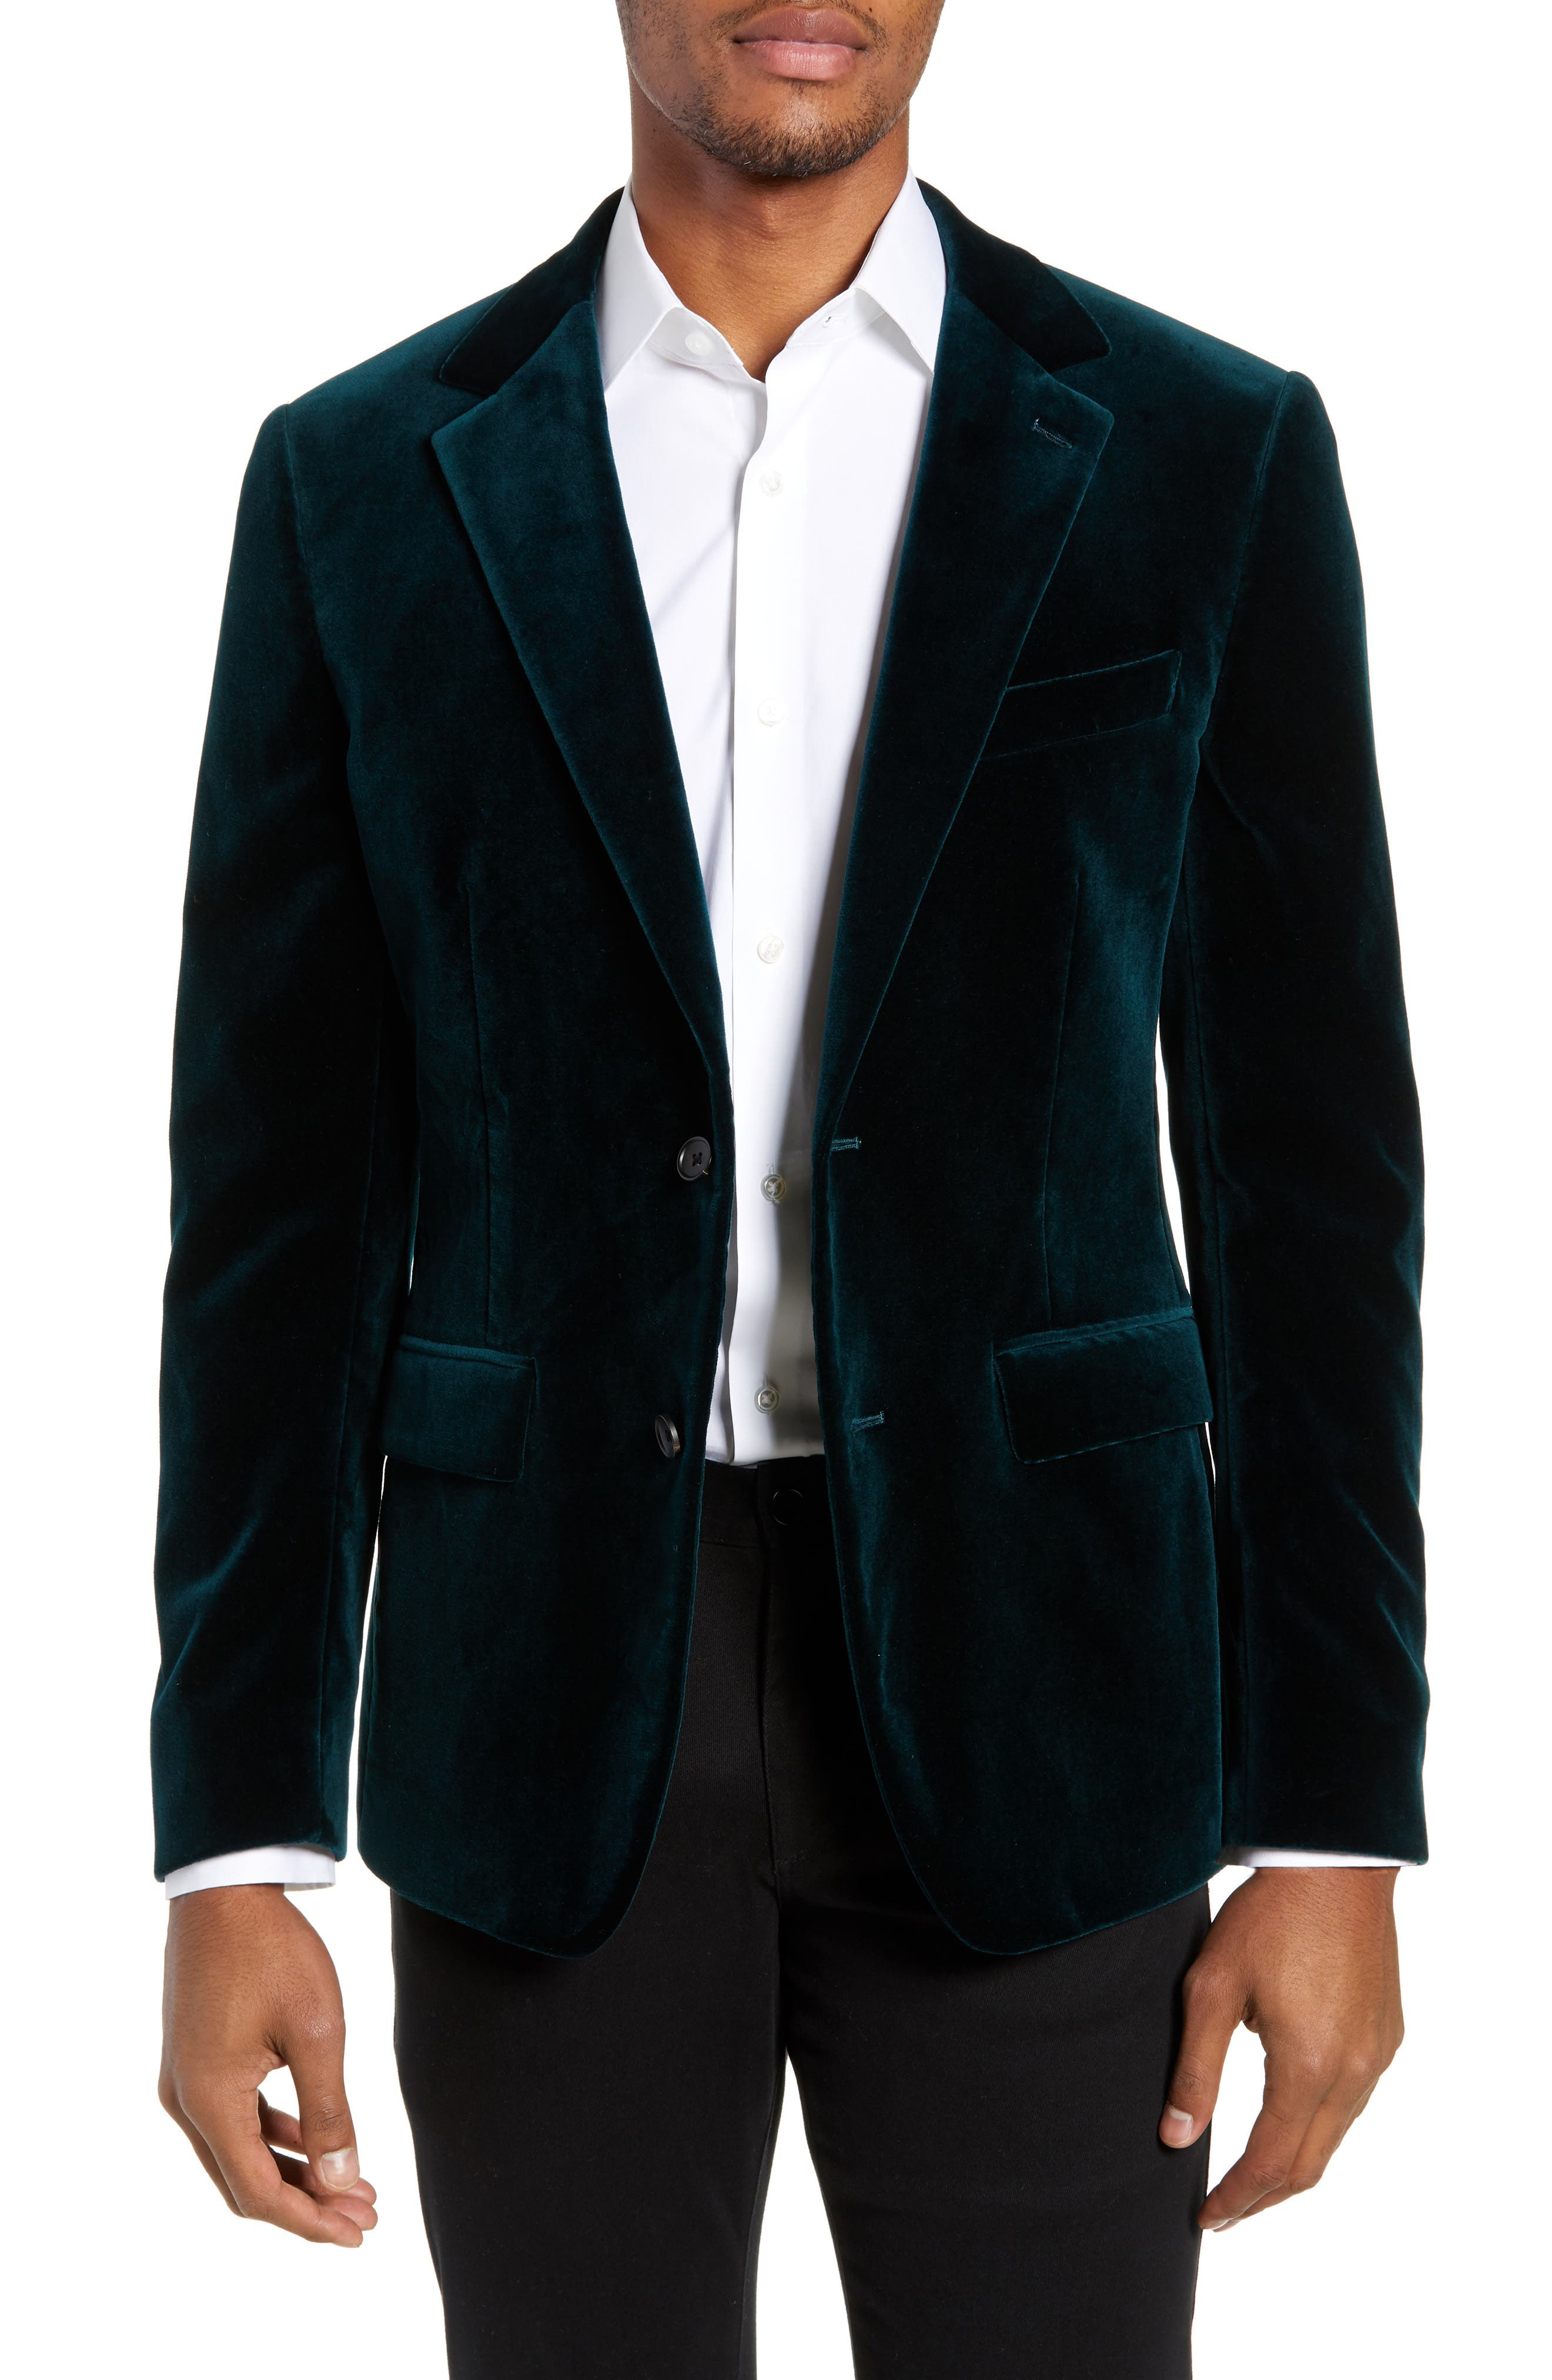 Jetsetter Slim Fit Stretch Velveteen Blazer,                             Main thumbnail 1, color,                             SOFT TEAL